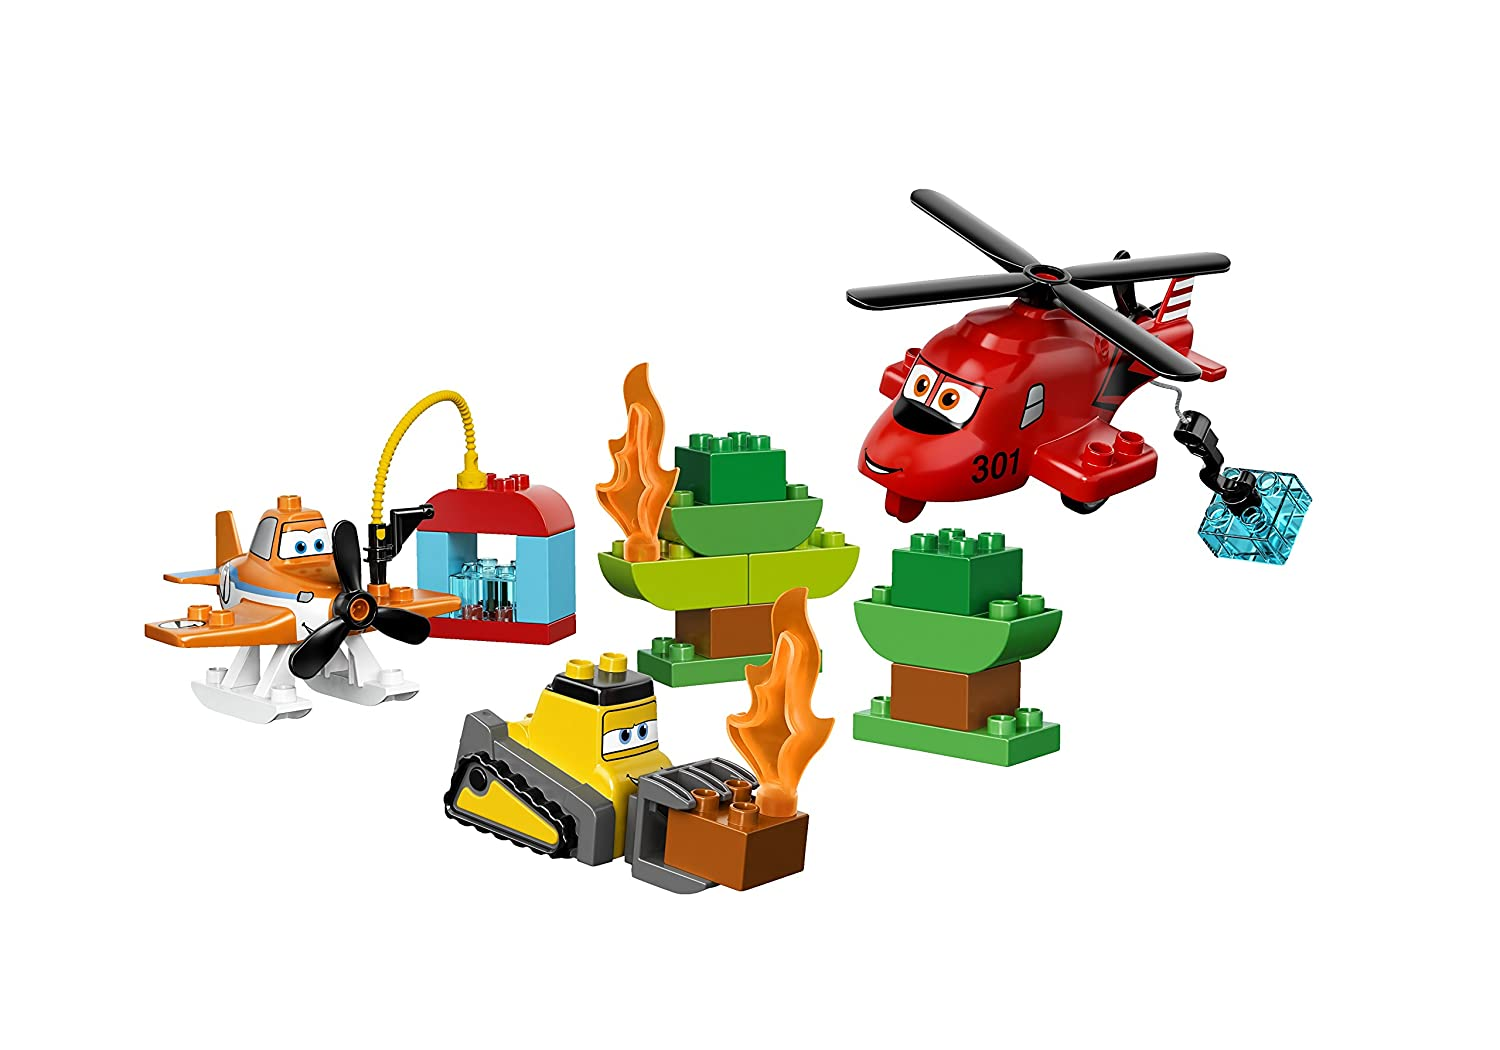 LEGO DUPLO Planes Fire and Rescue Team 10538 Building Toy 6061863